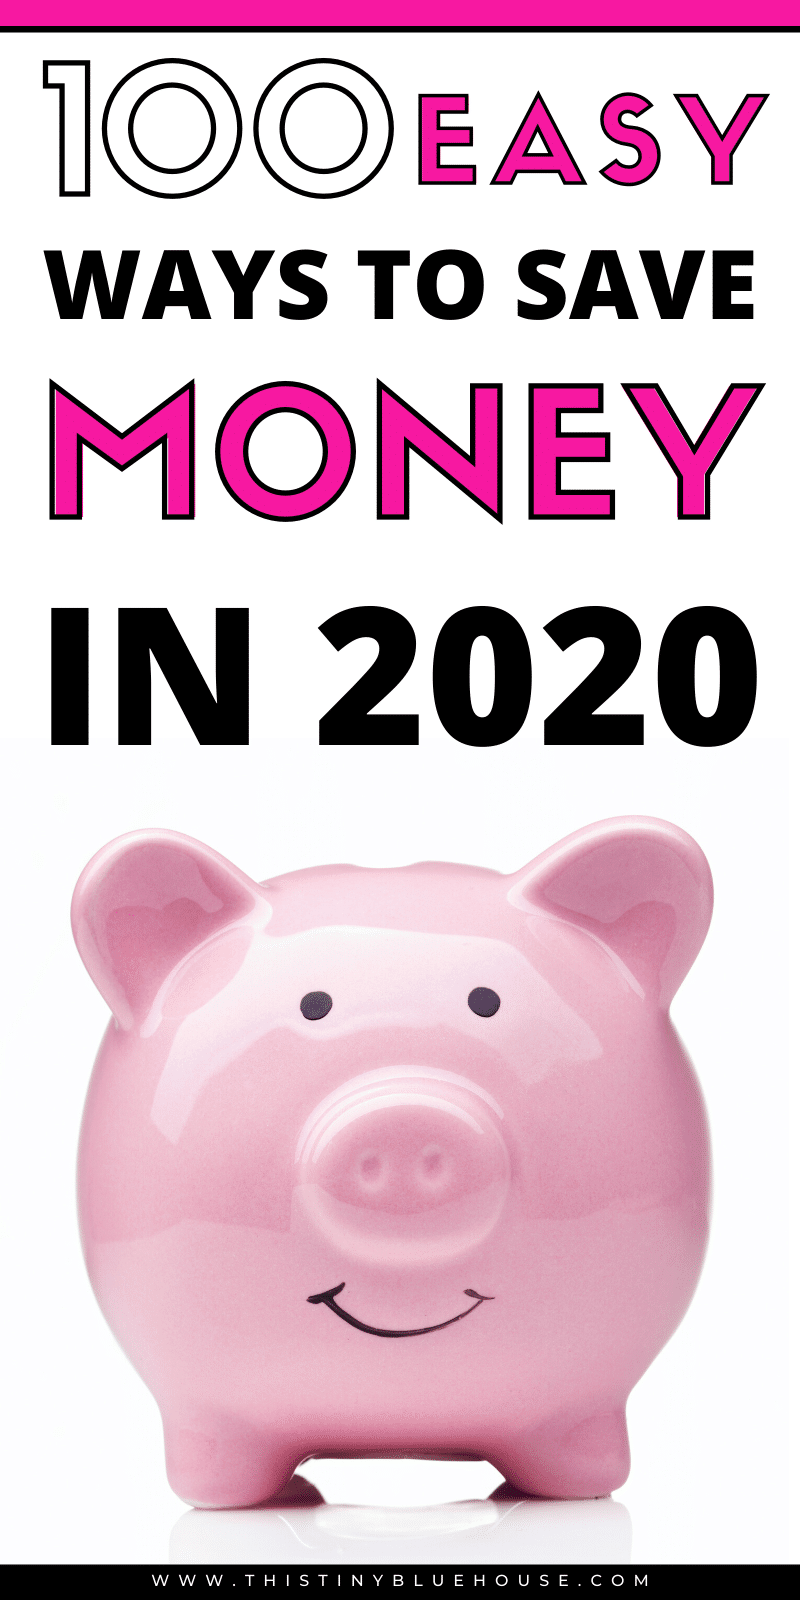 are you looking for realistic ways to save more cash in 2020? Here are 100 clever ways to save some extra cash every month! #frugalliving #waystosavemoney #easywaystosavemoney #moneysavinghacks #easywaystosavemoney #bestwaystosavemoney #simplewaystosavemoney